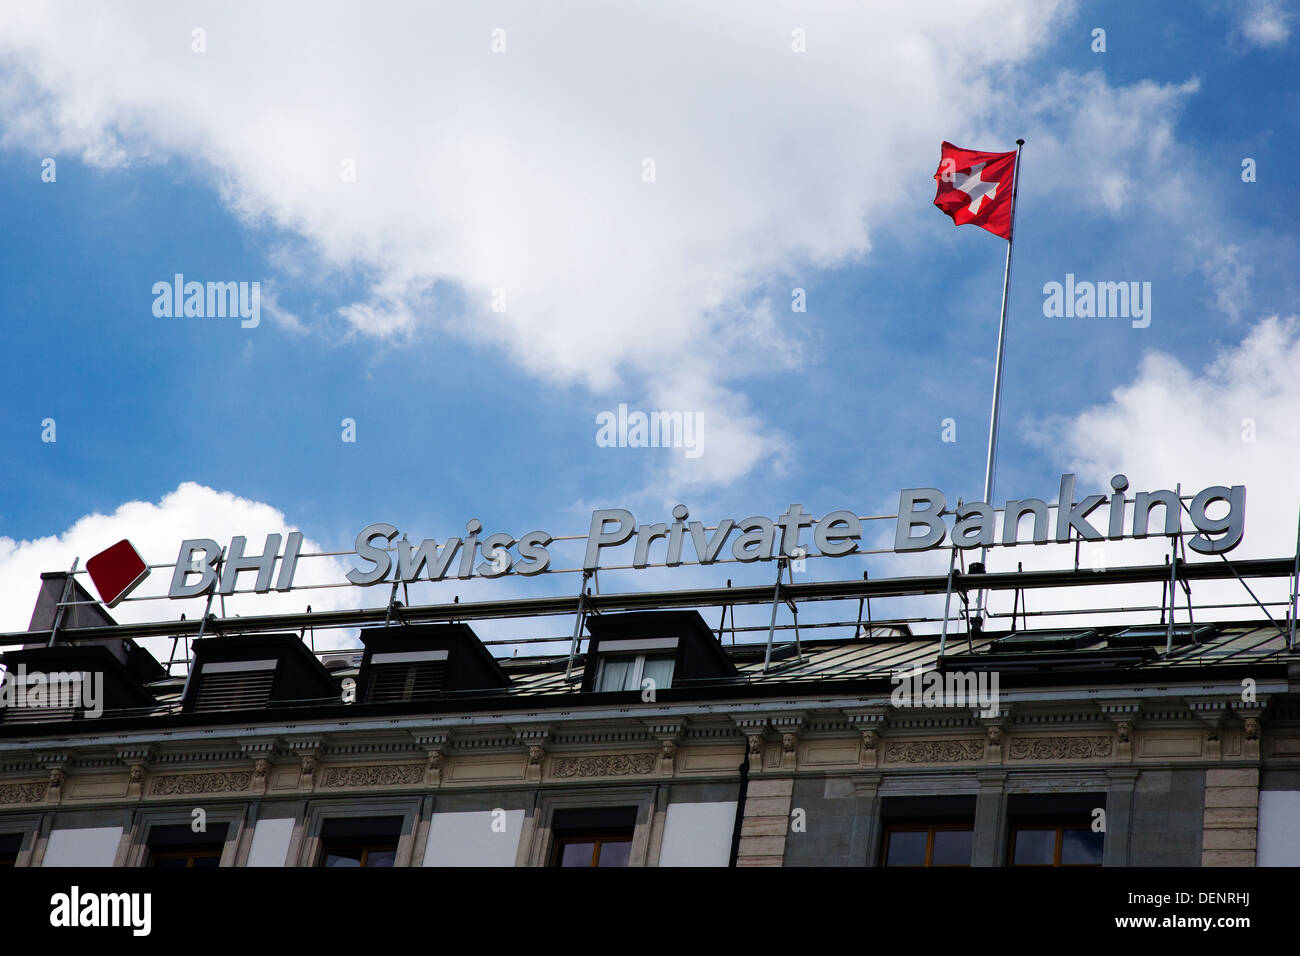 BHI Swiss Private Banking sign on the company's building in Geneva - Stock Image